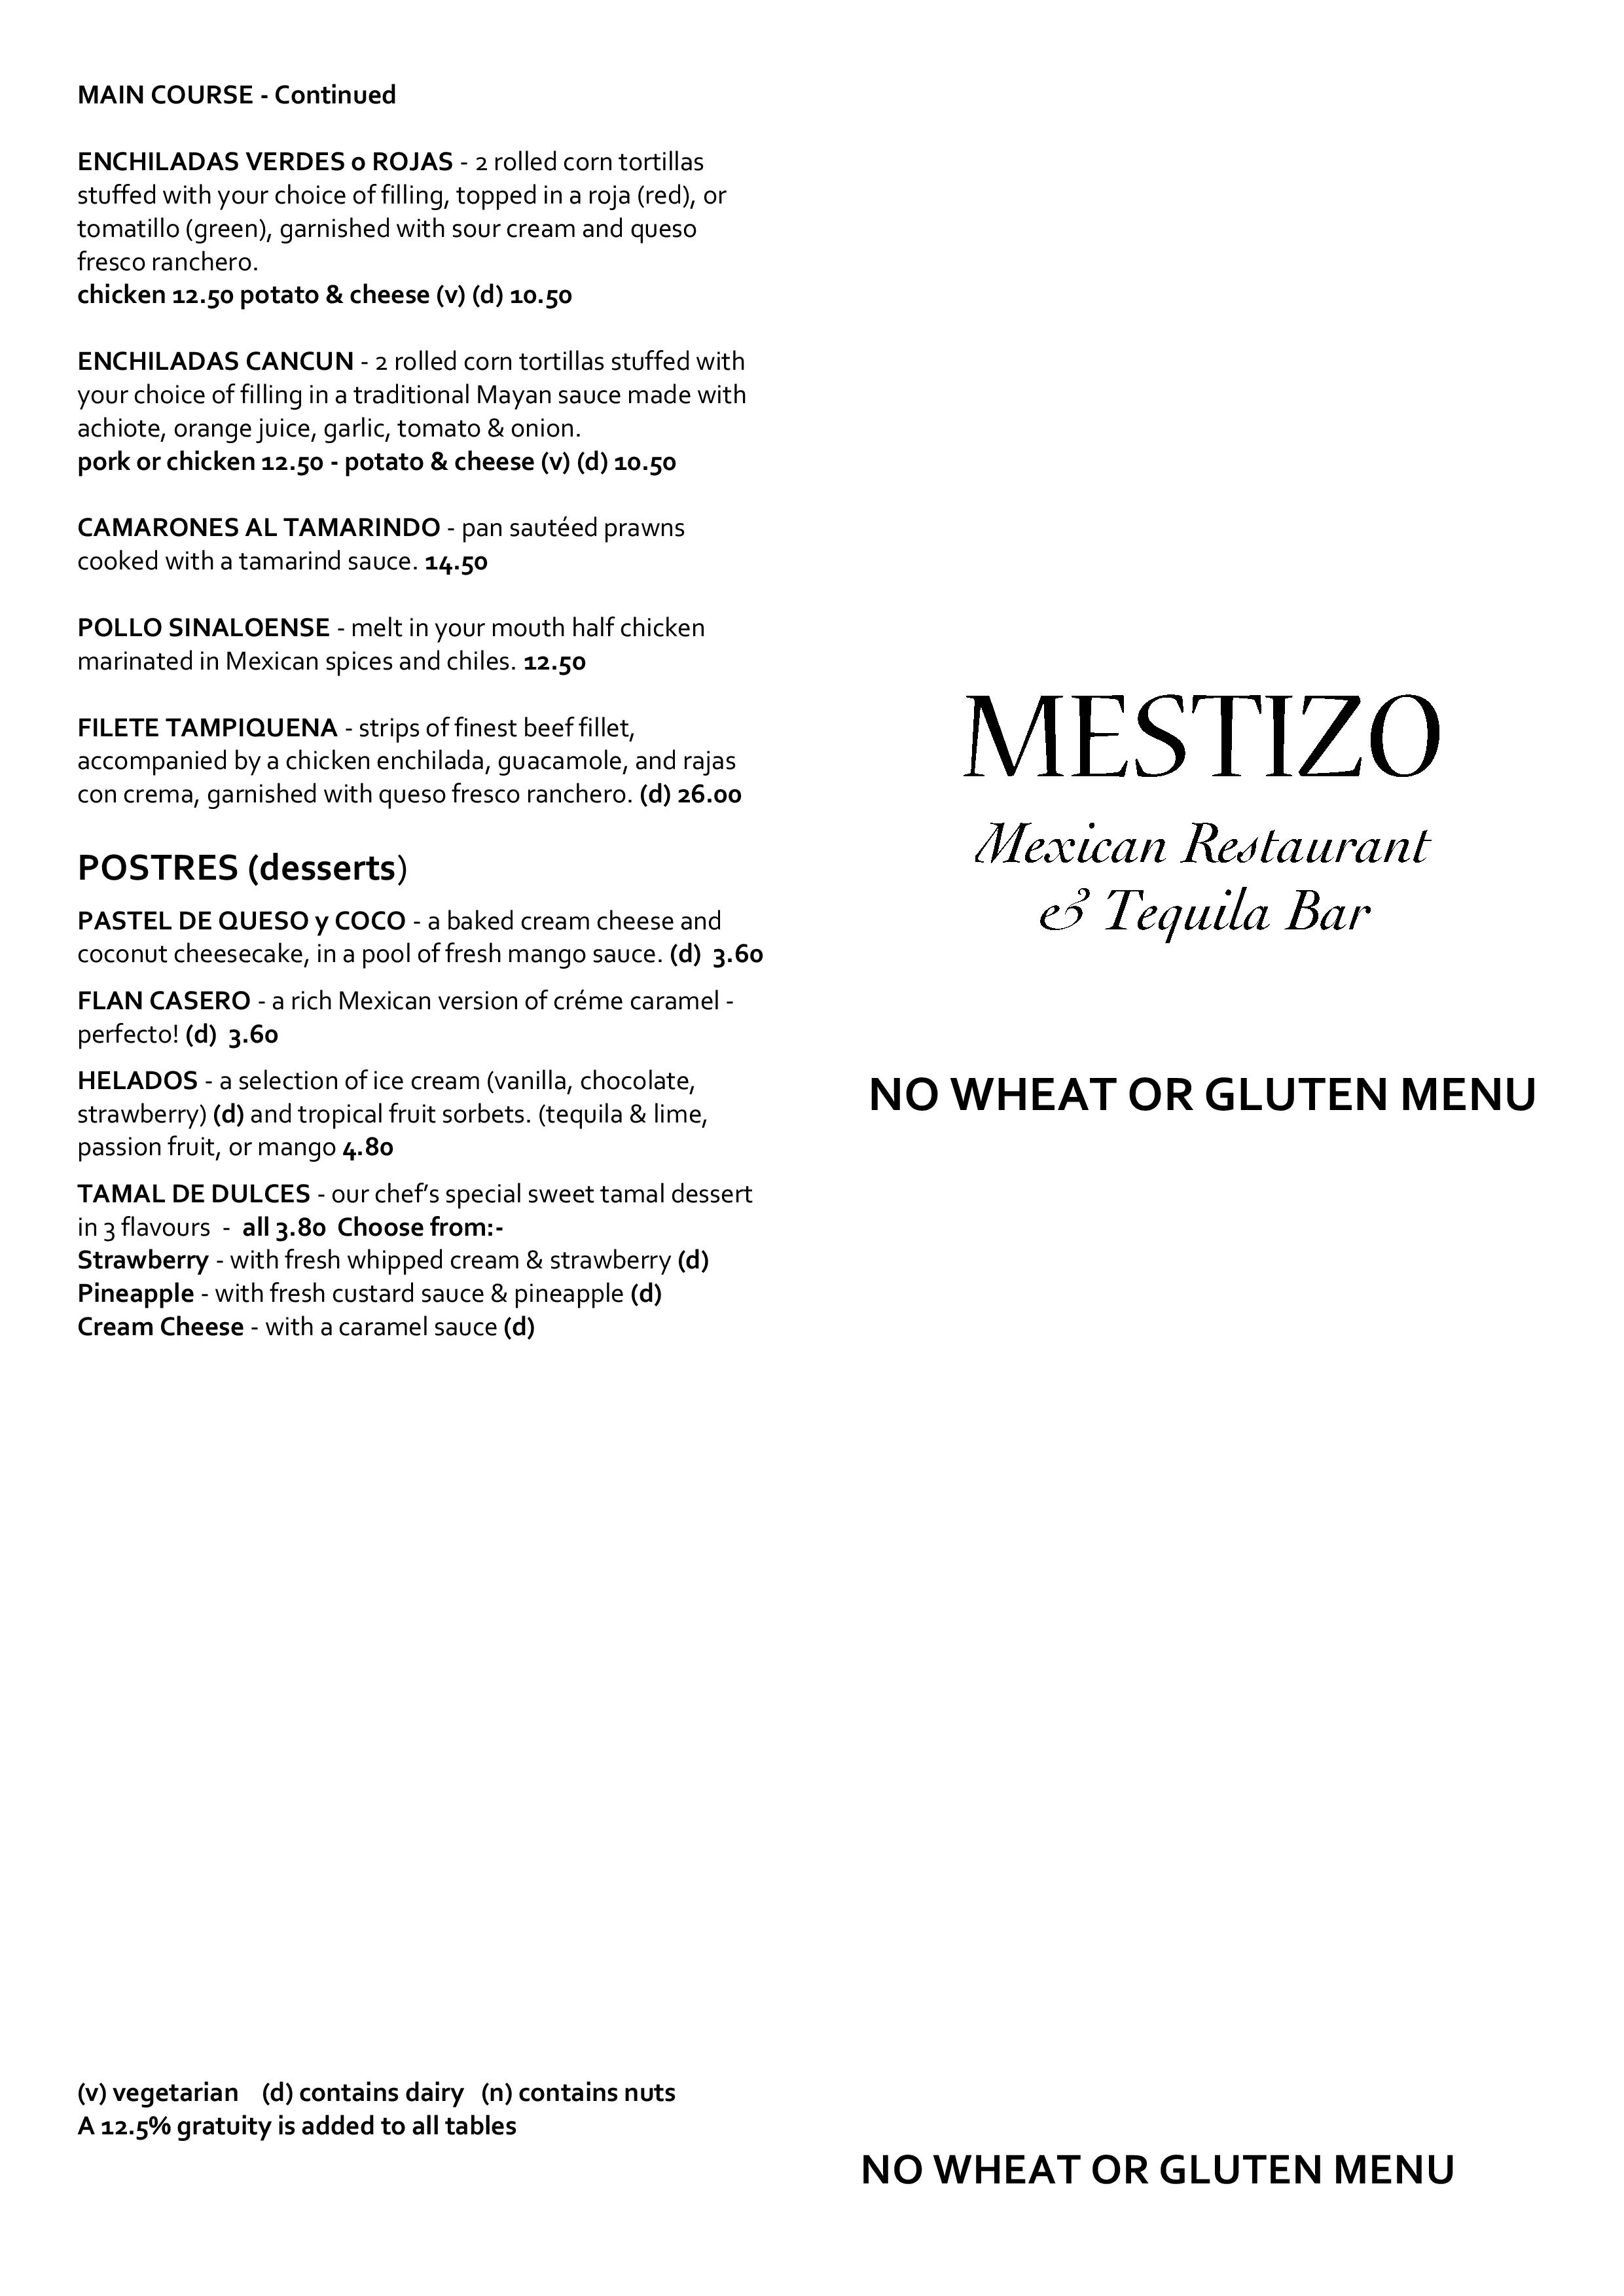 Final no Wheat or Gluten Menu. 9.1.18-page-001